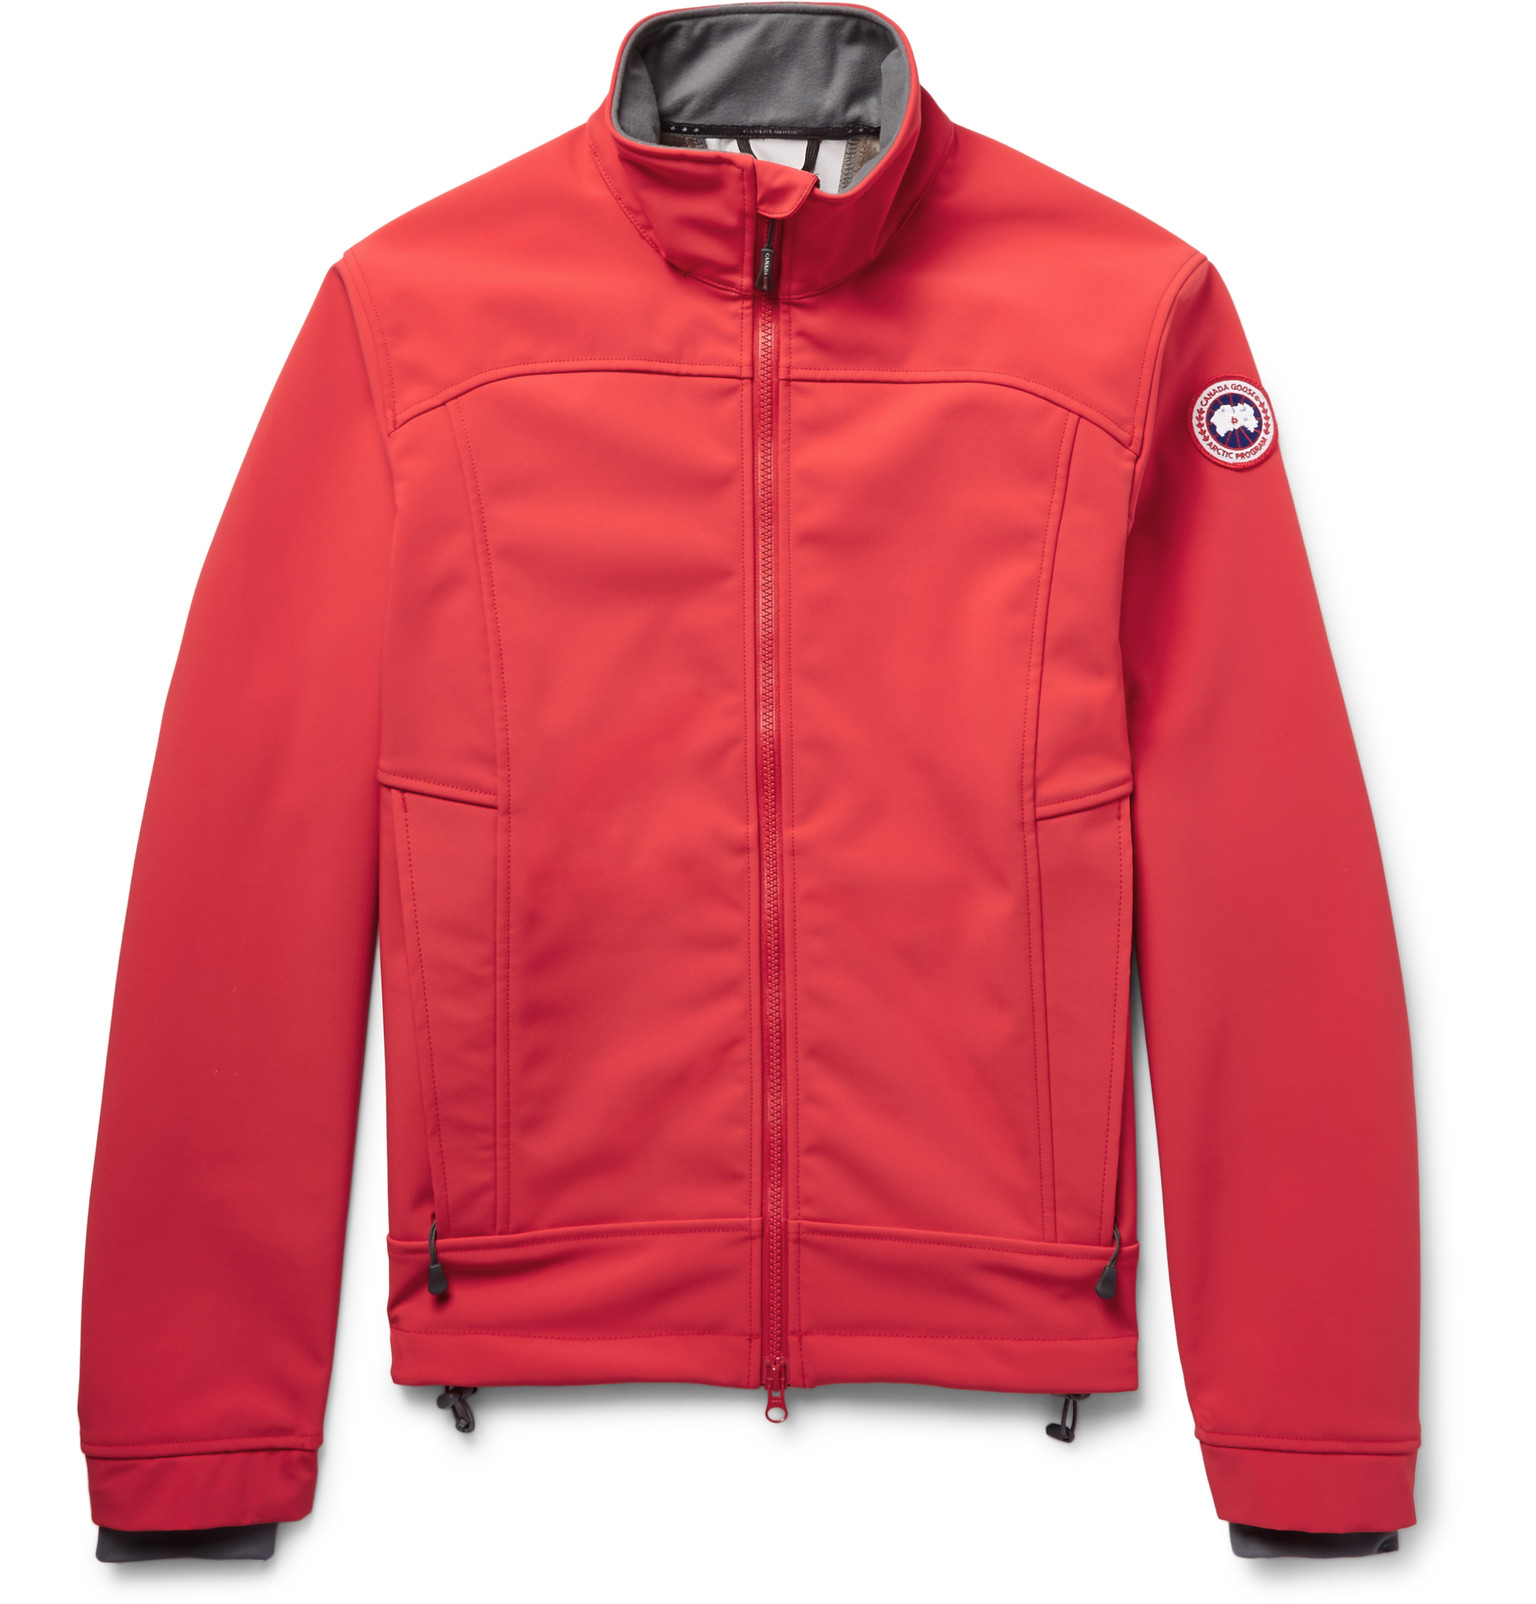 Canada Goose mens outlet 2016 - Canada Goose at MR PORTER